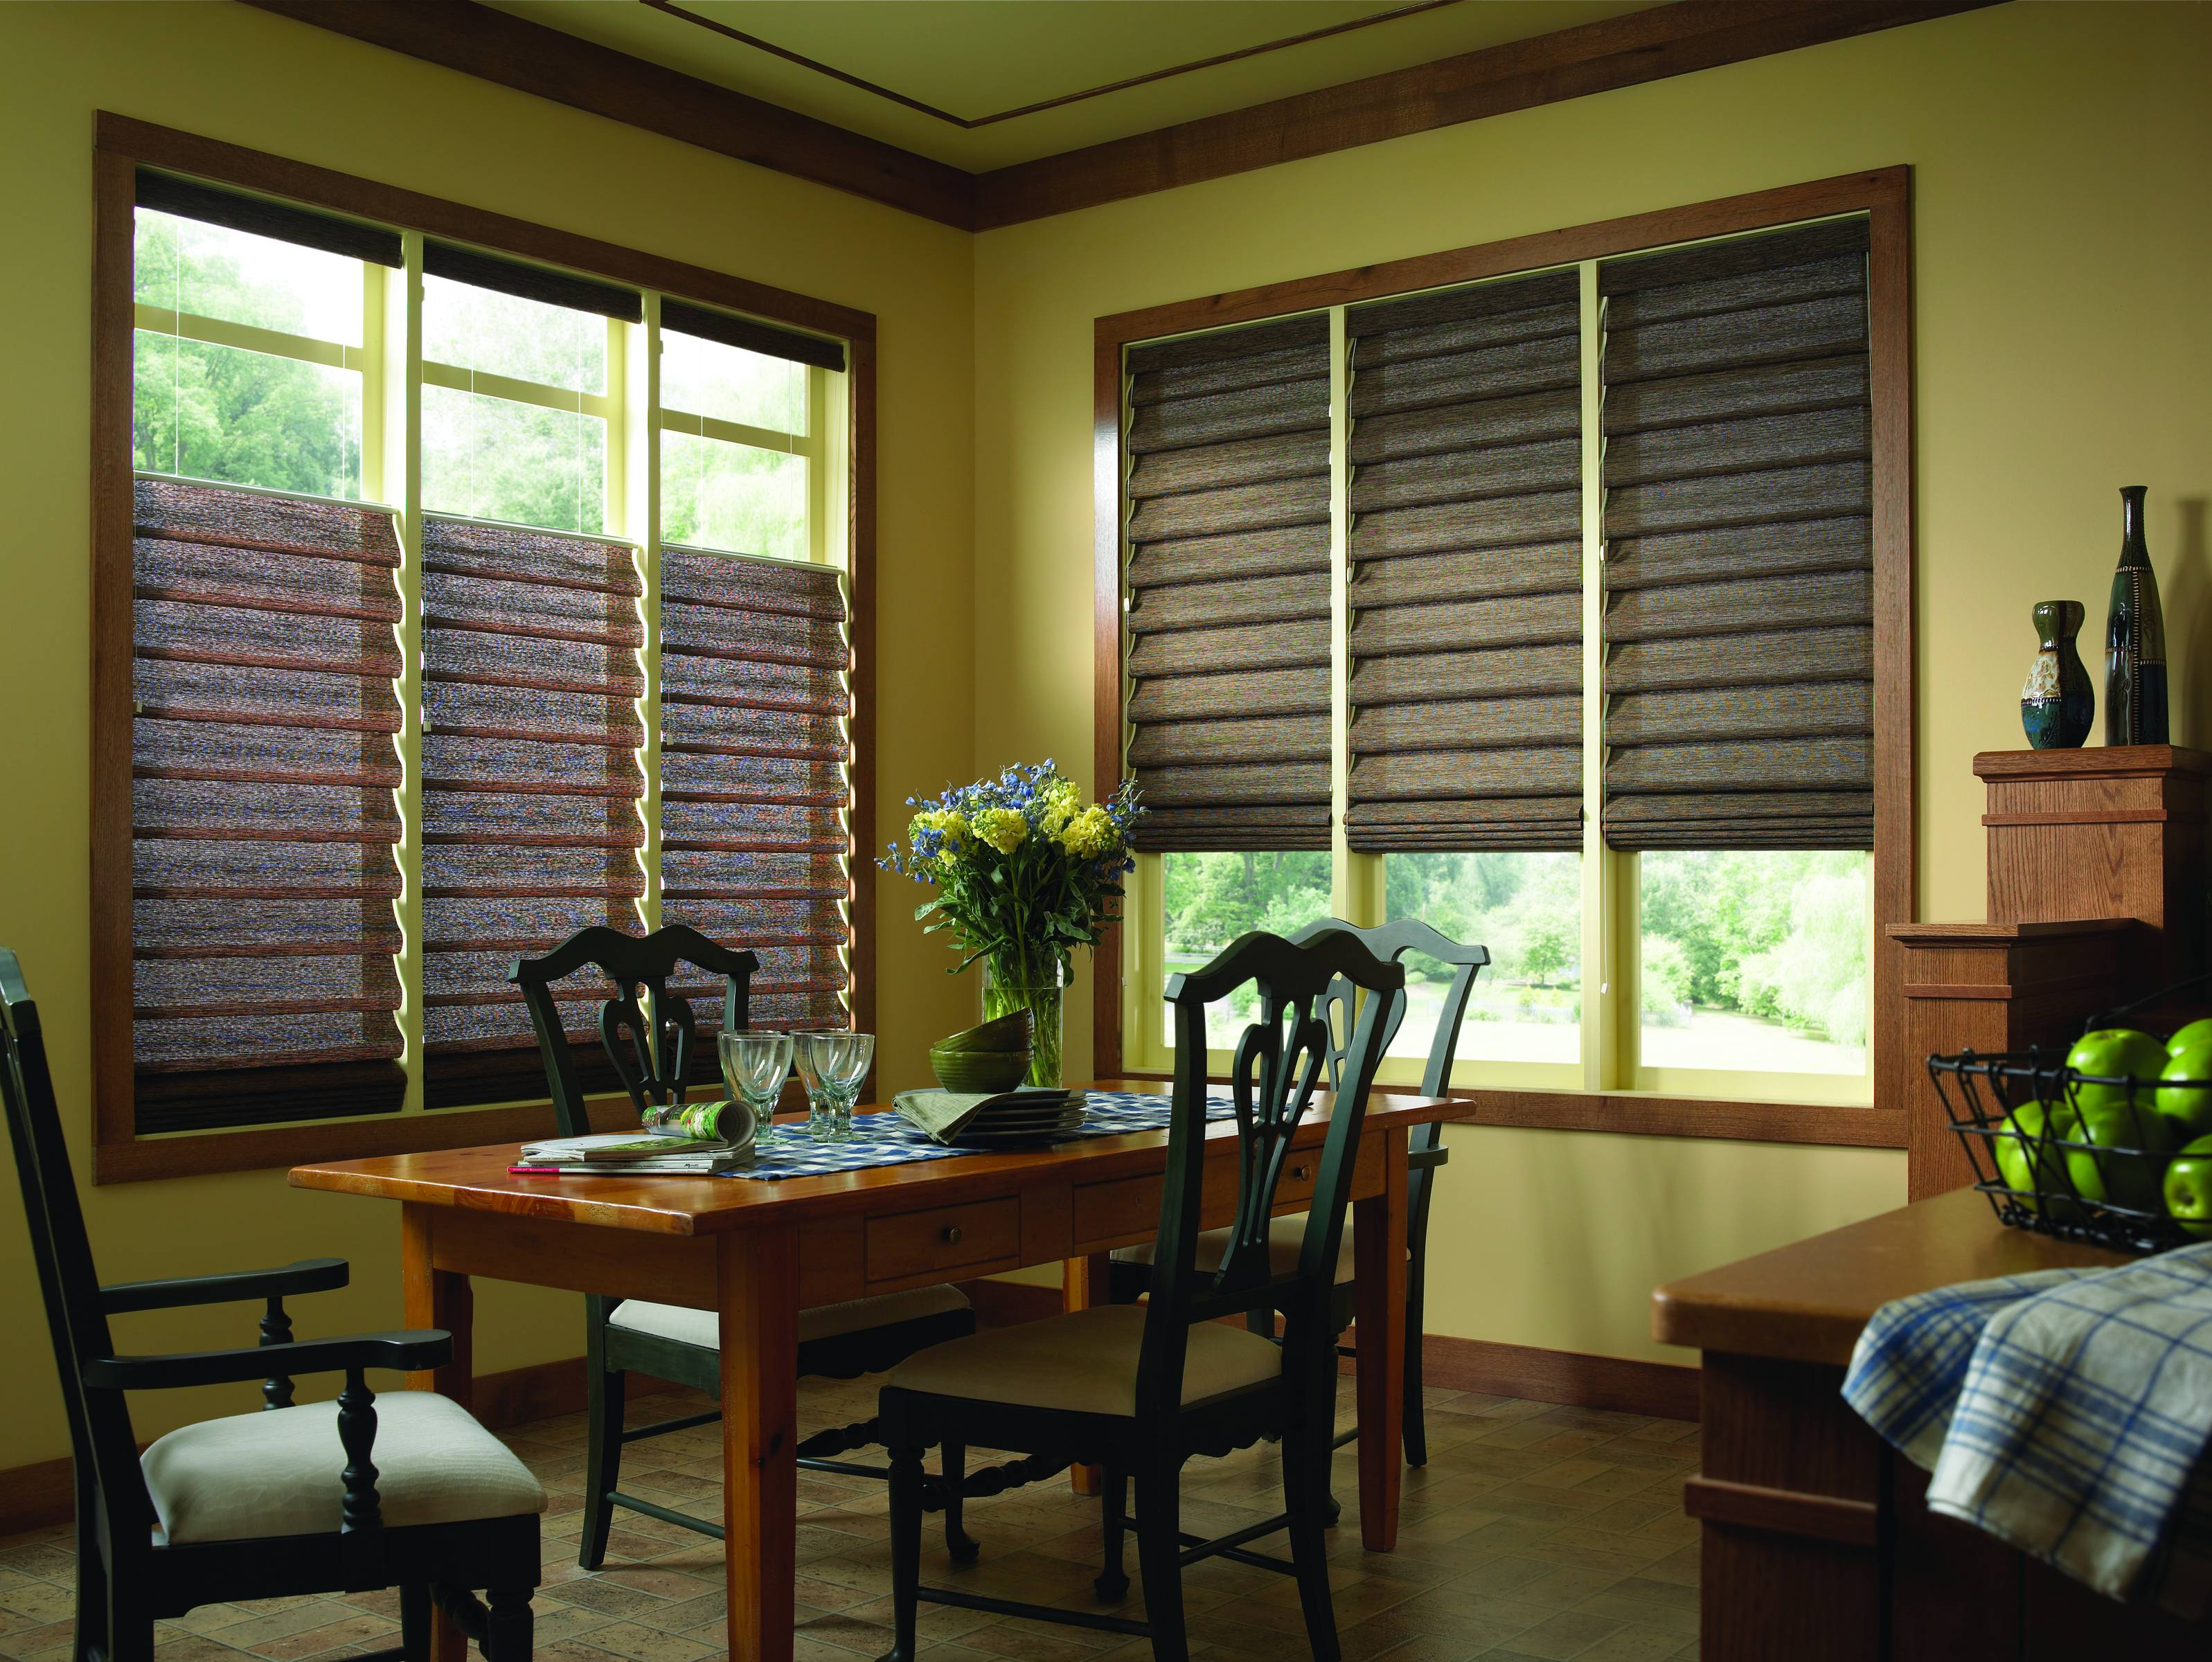 interior comfortex fauxwood roman home ideas shade blind shades reviews blinds com outlet privacy window coupon windowblindoutlet with your factory increase depot code